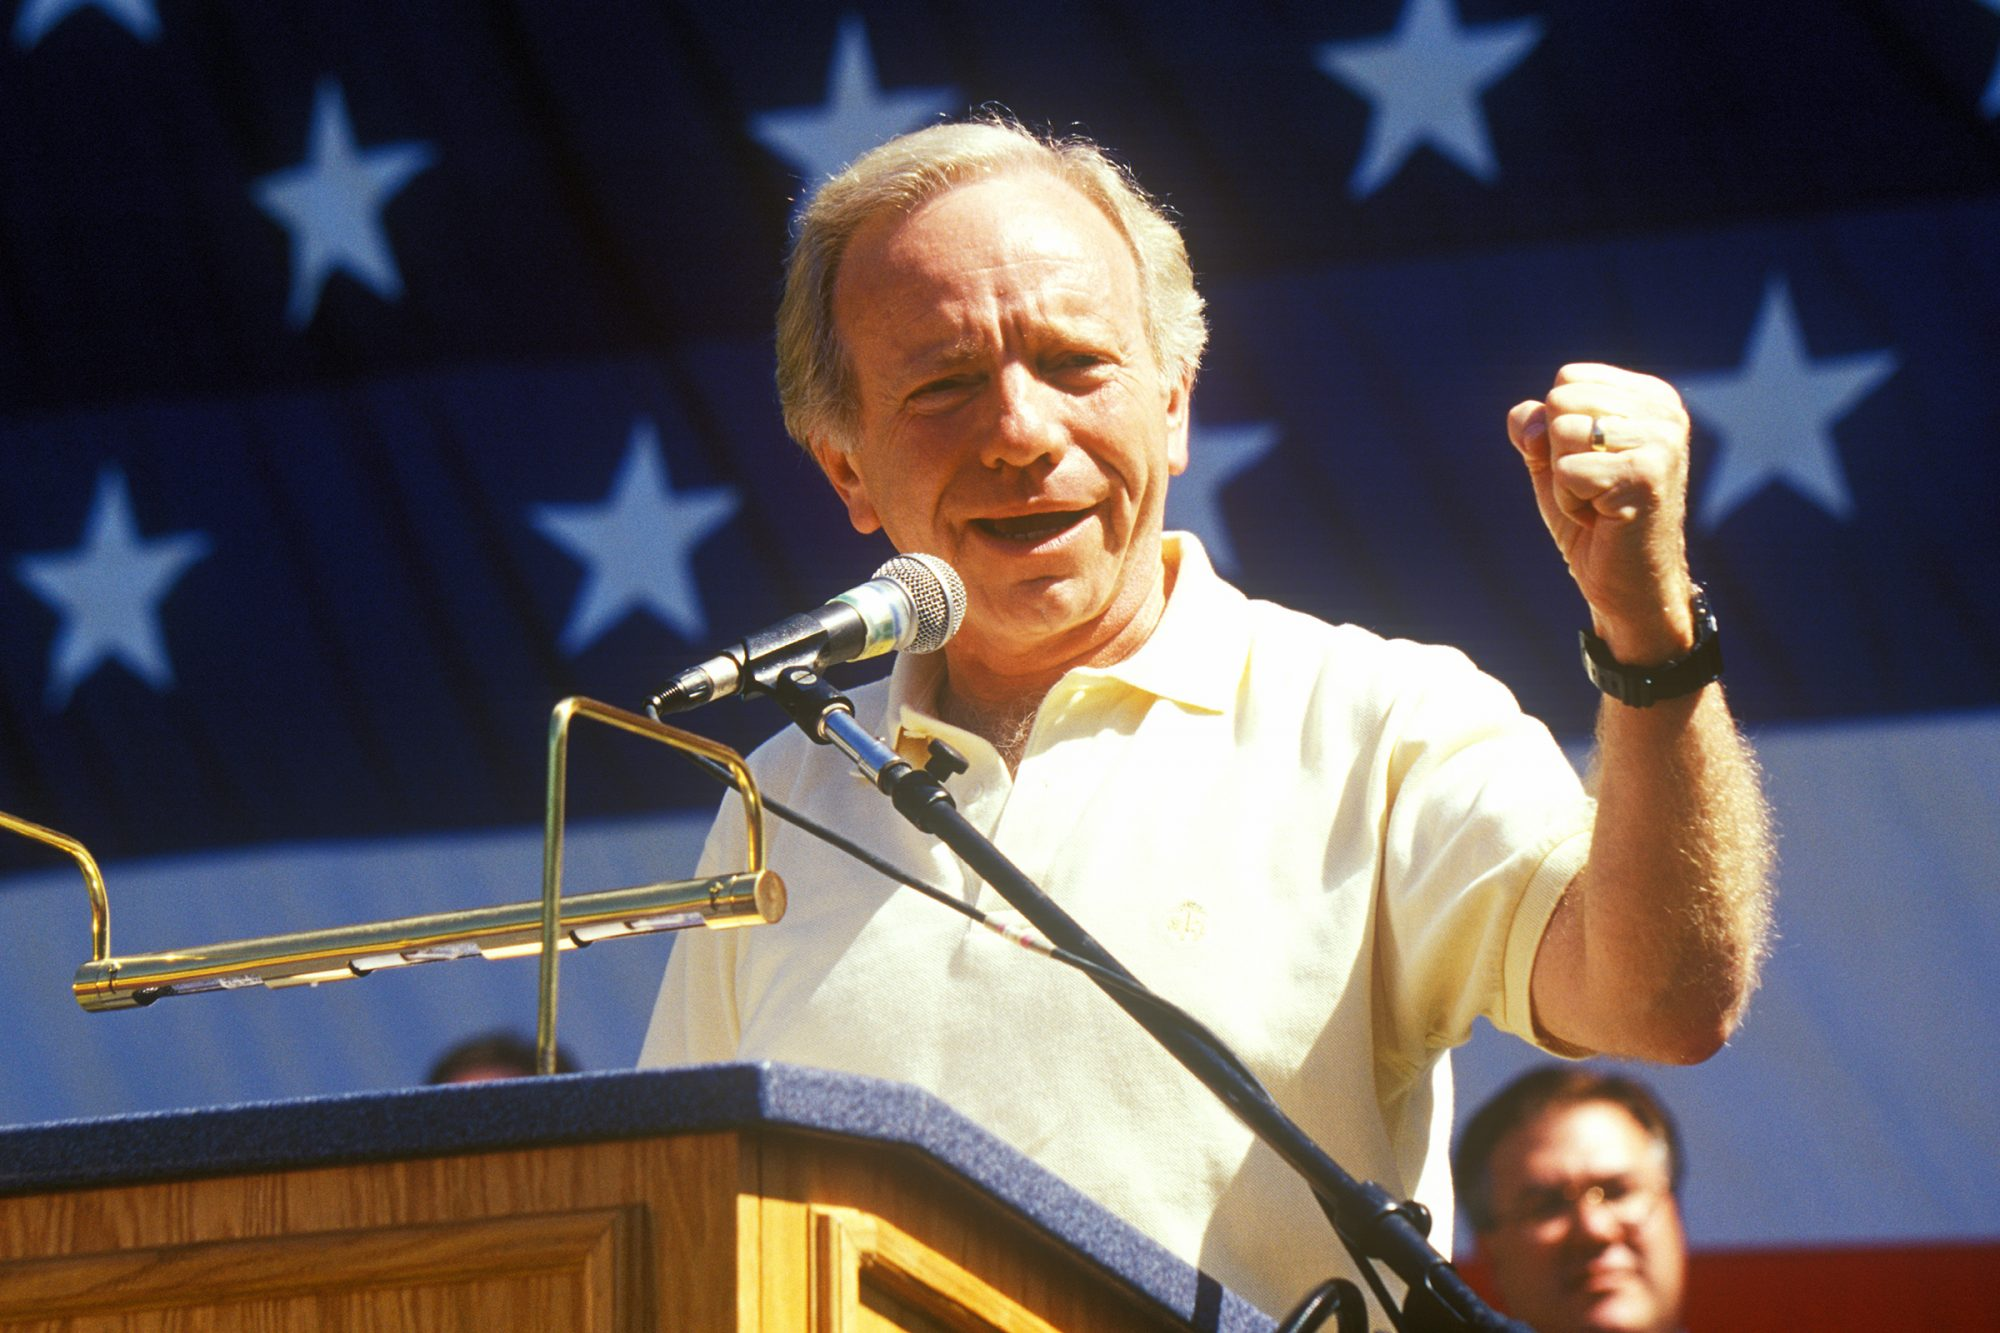 Senator Joe Lieberman campaigns for vice president during a rally at California State University at Fresno